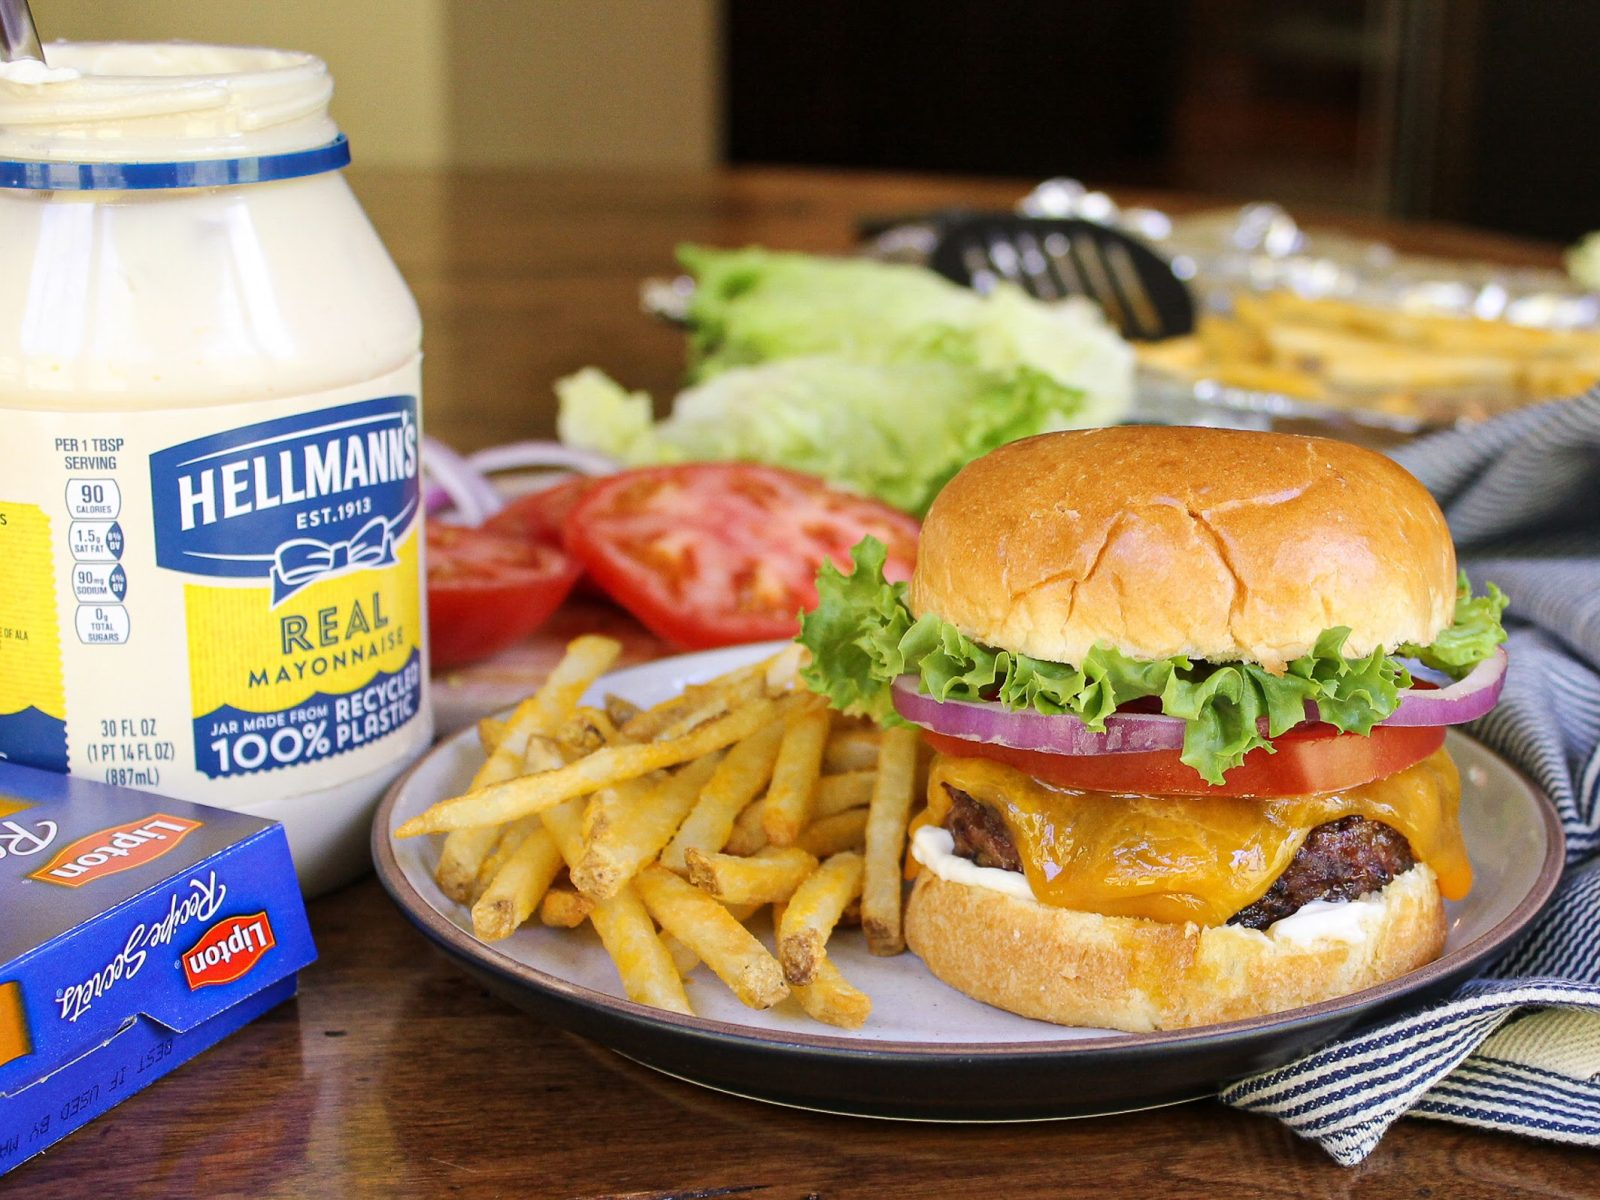 Whip Up A Batch Of Best Ever Juicy Burgers Recipe And Earn Gift Cards To Boot! on I Heart Publix